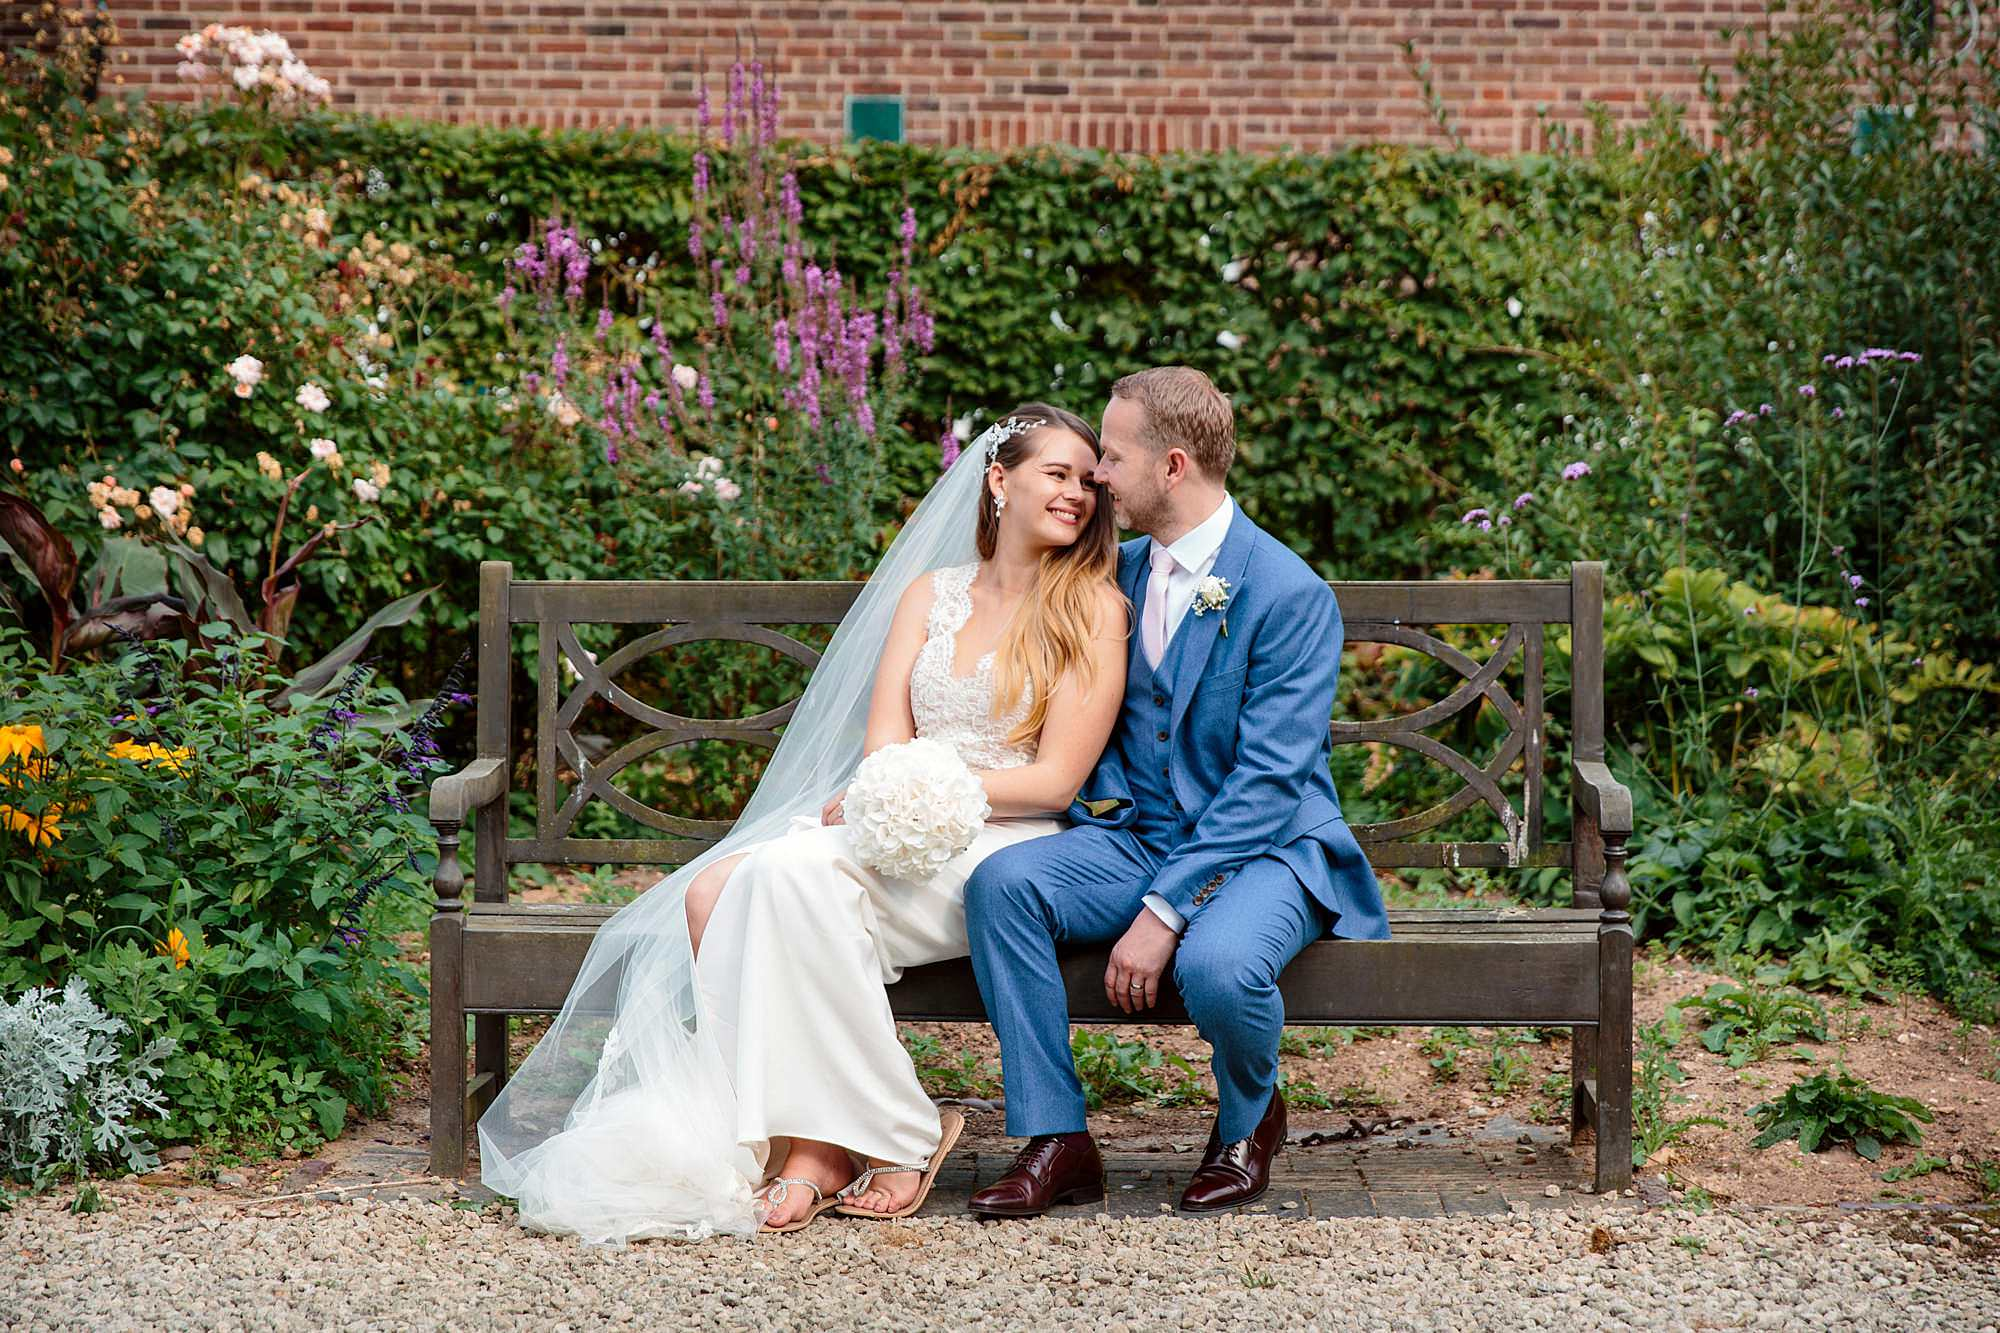 Writtle university college wedding bride and groom on bench